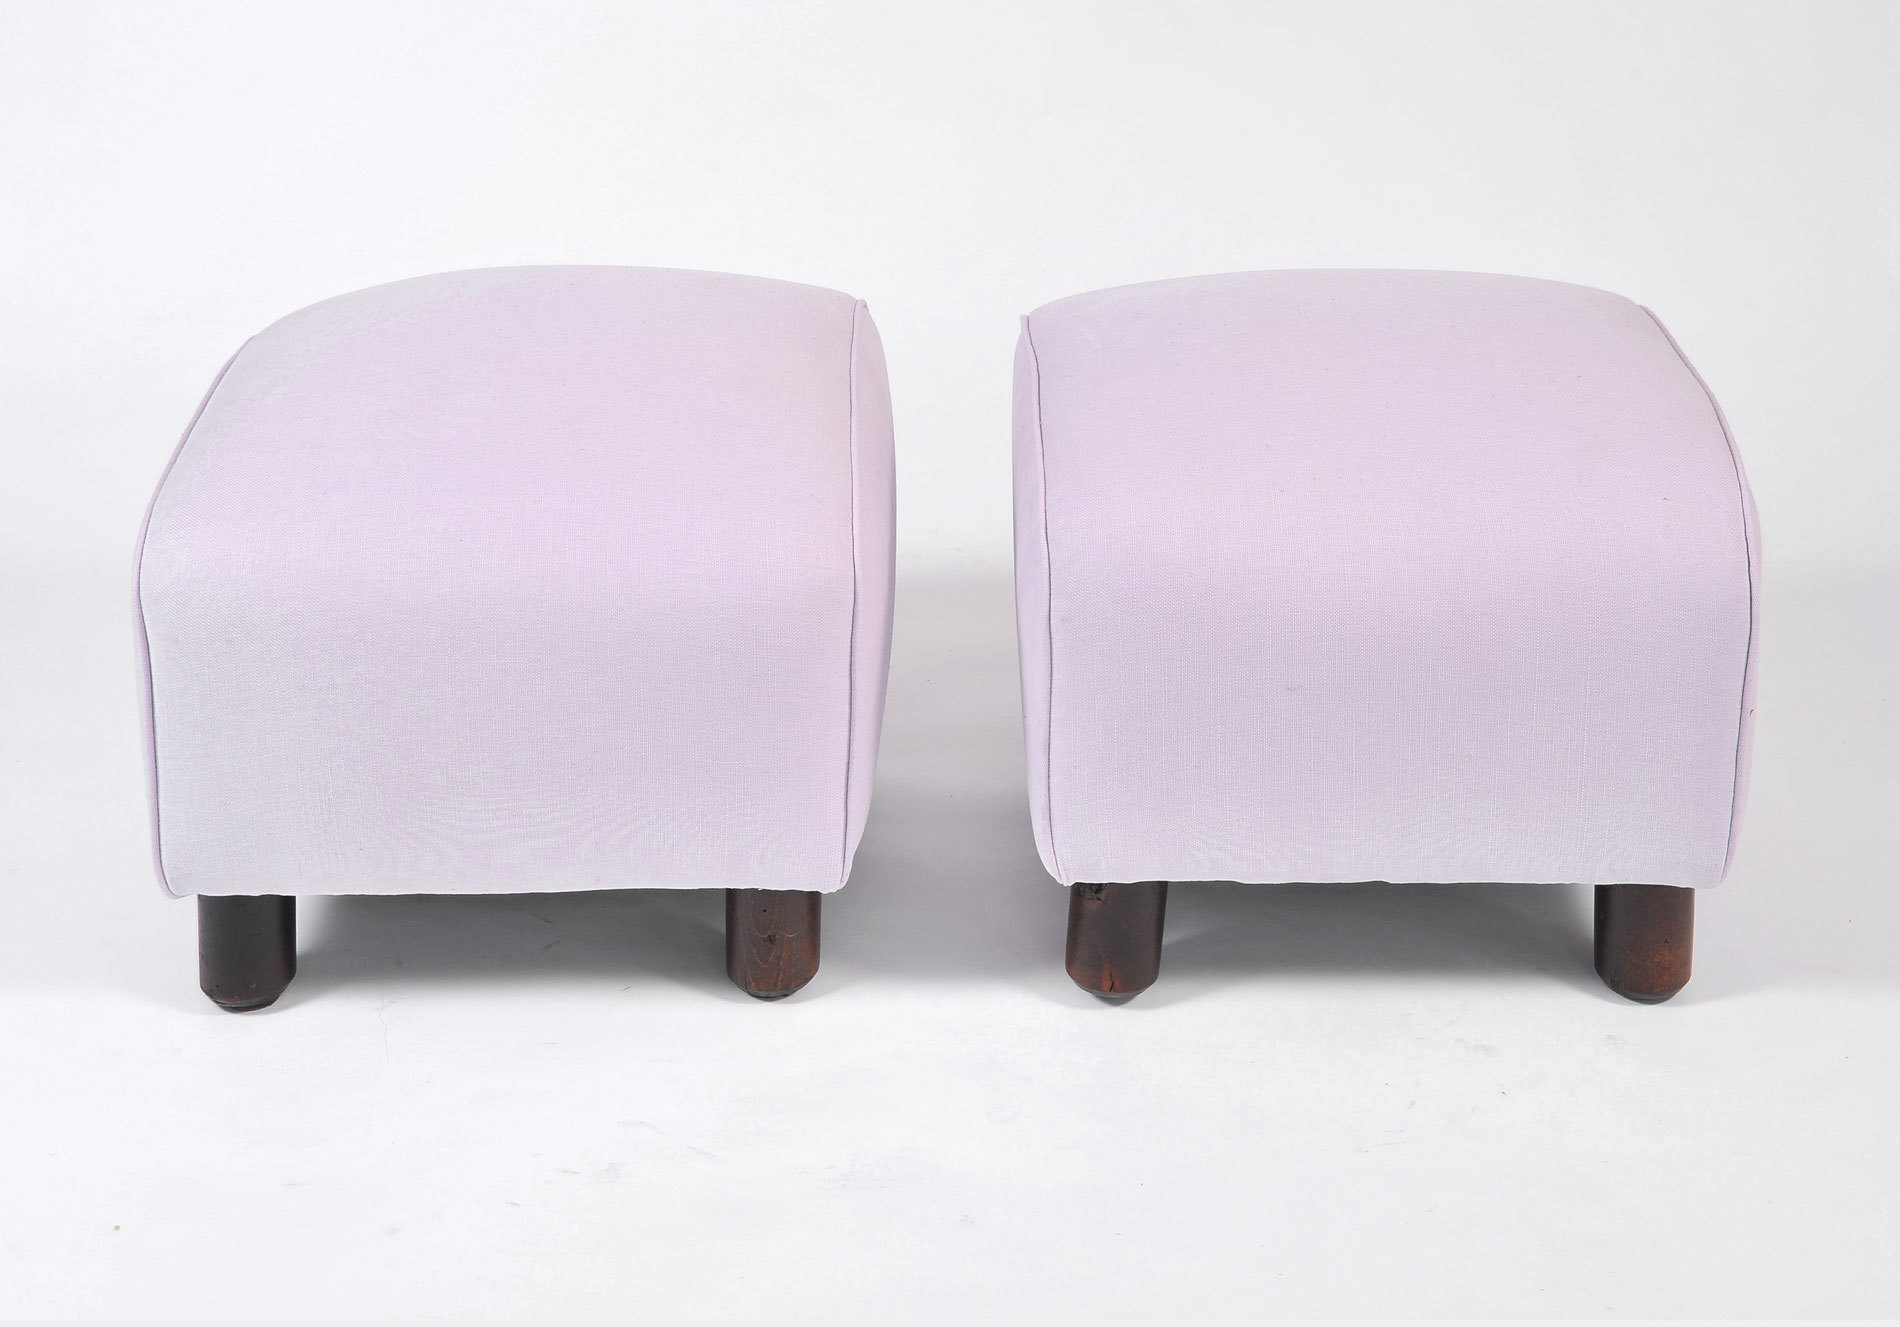 Pair Of Wood Stools In Lilac 02